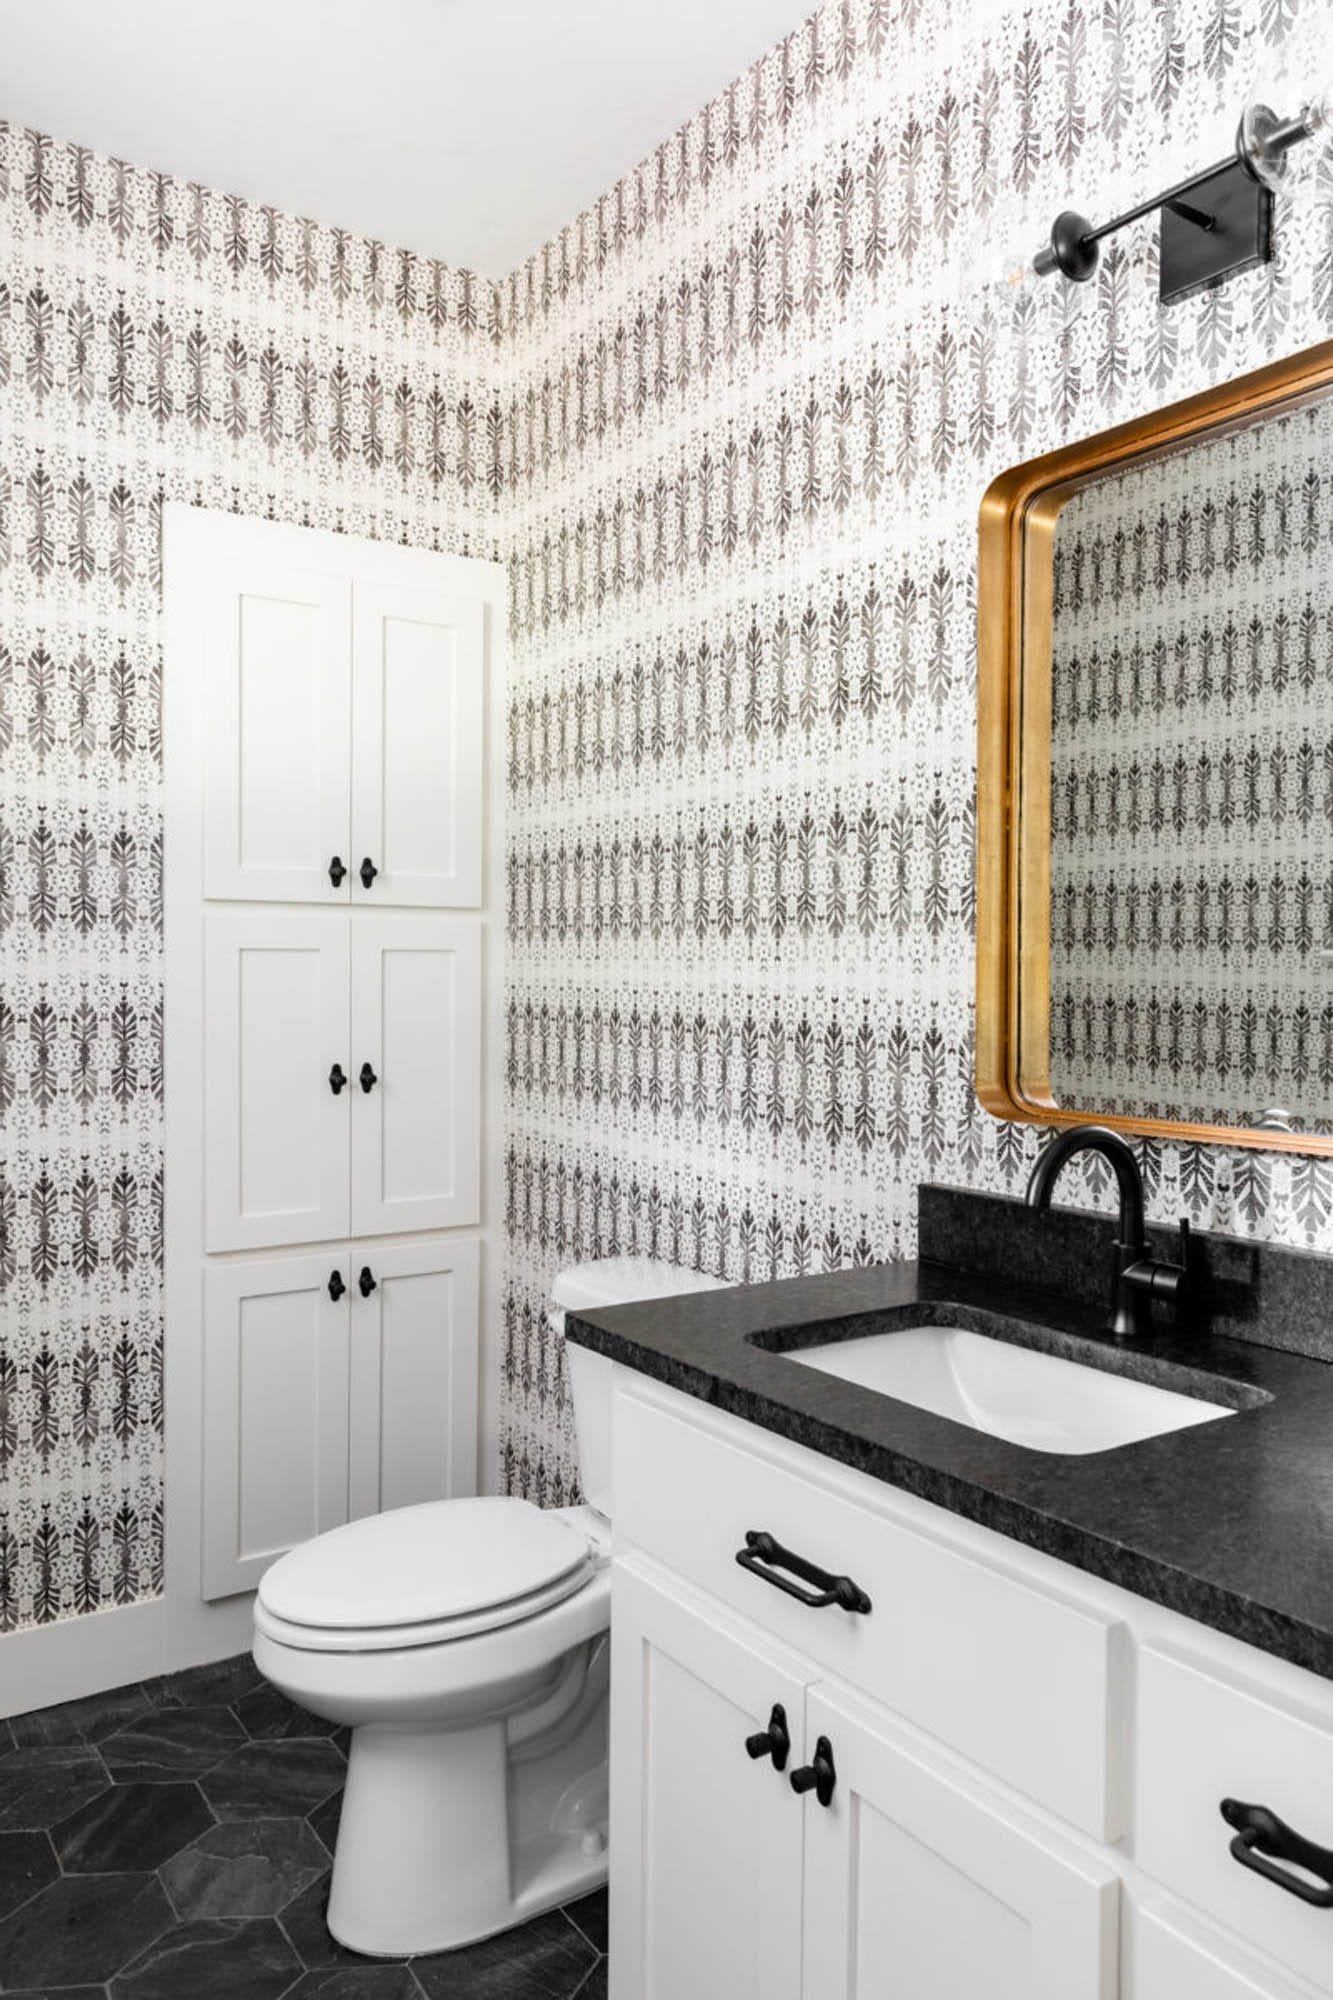 Glamorous bathroom with wallpaper